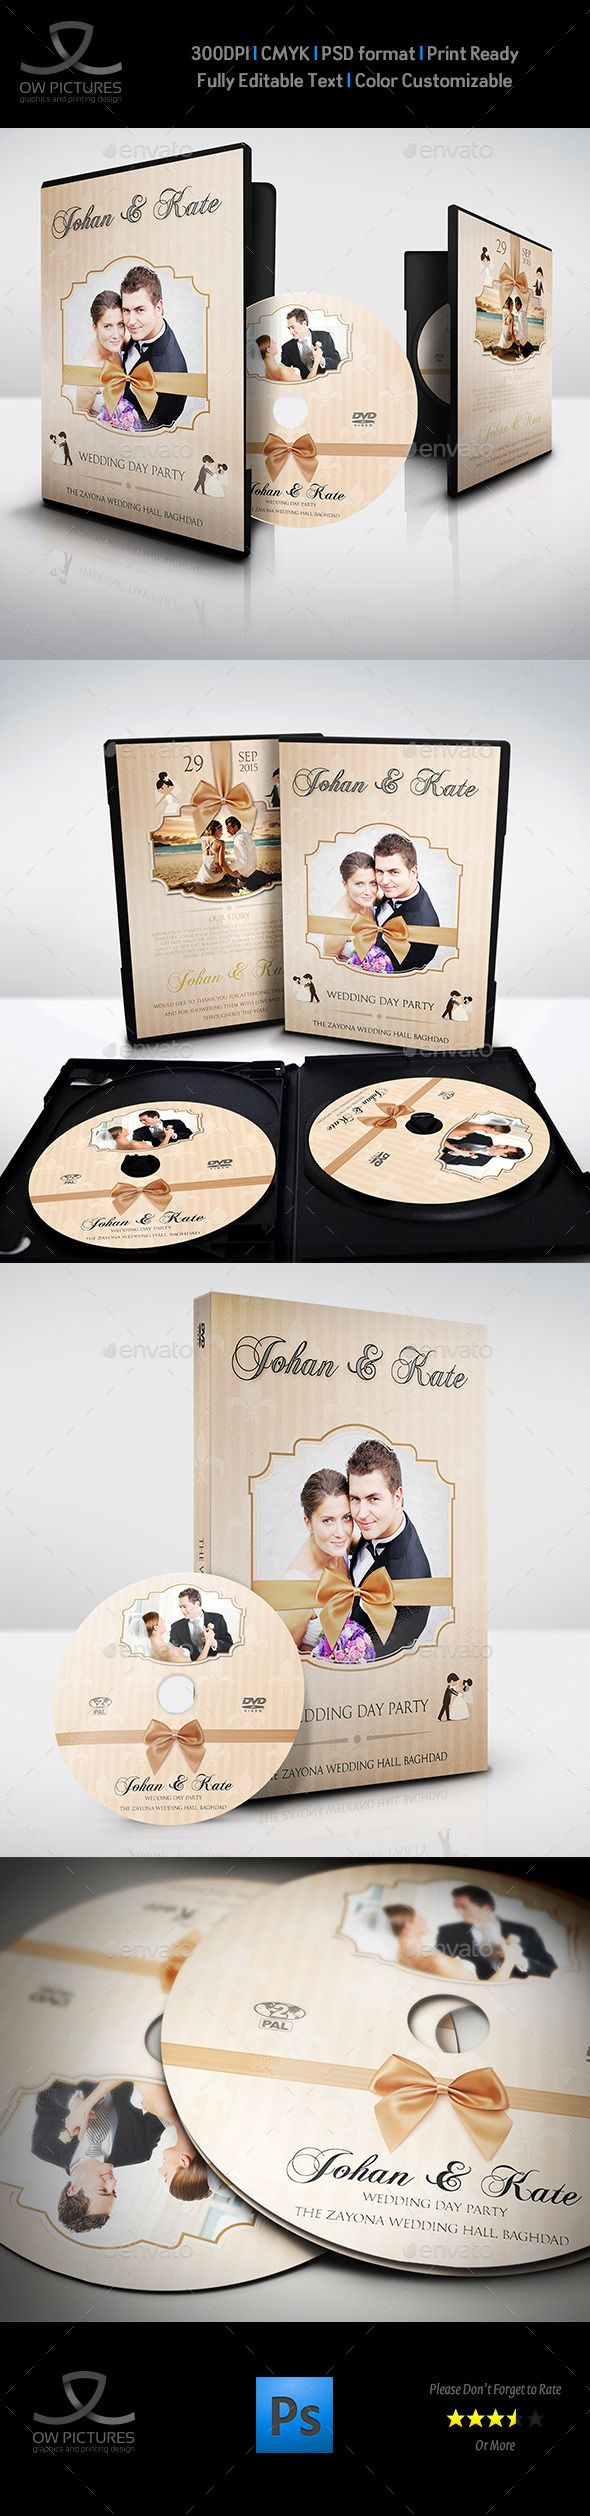 Wedding DVD Cover and DVD Label Template Vol.5 — Photoshop PSD #engagement #wedding dvds • Available here → https://graphicriver.net/item/wedding-dvd-cover-and-dvd-label-template-vol5/10000065?ref=pxcr